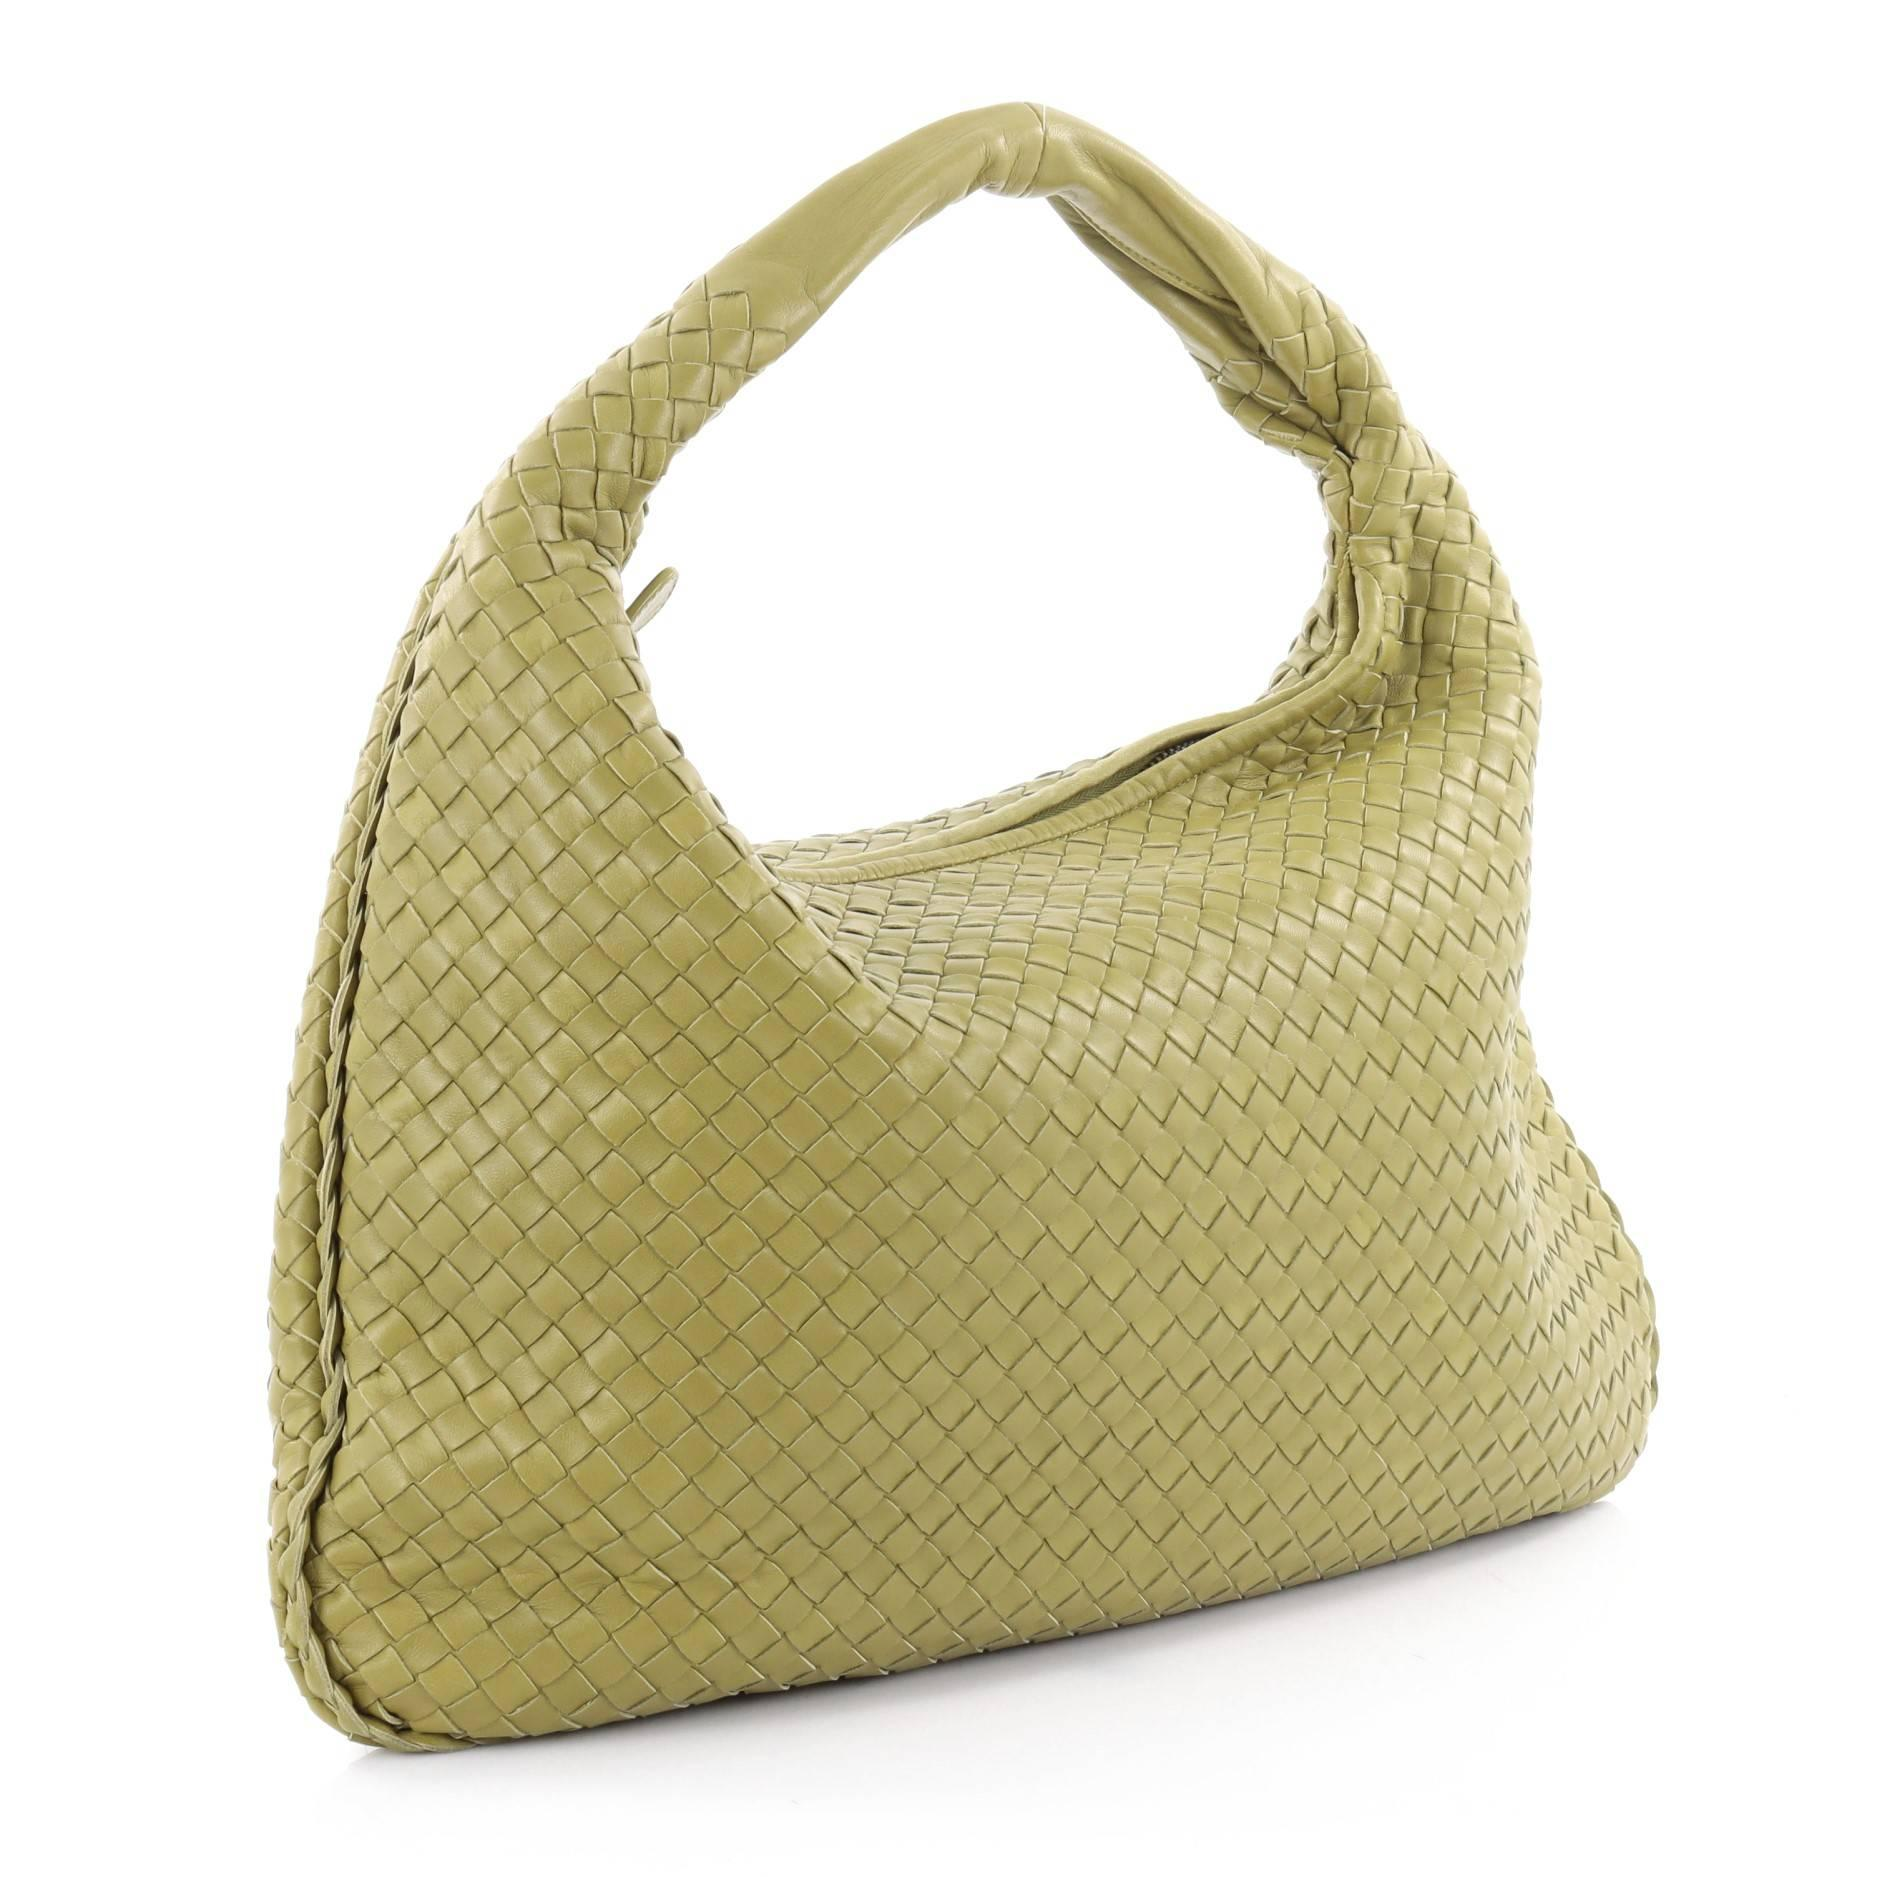 14c751a63d Bottega Veneta Veneta Hobo Intrecciato Nappa Large at 1stdibs